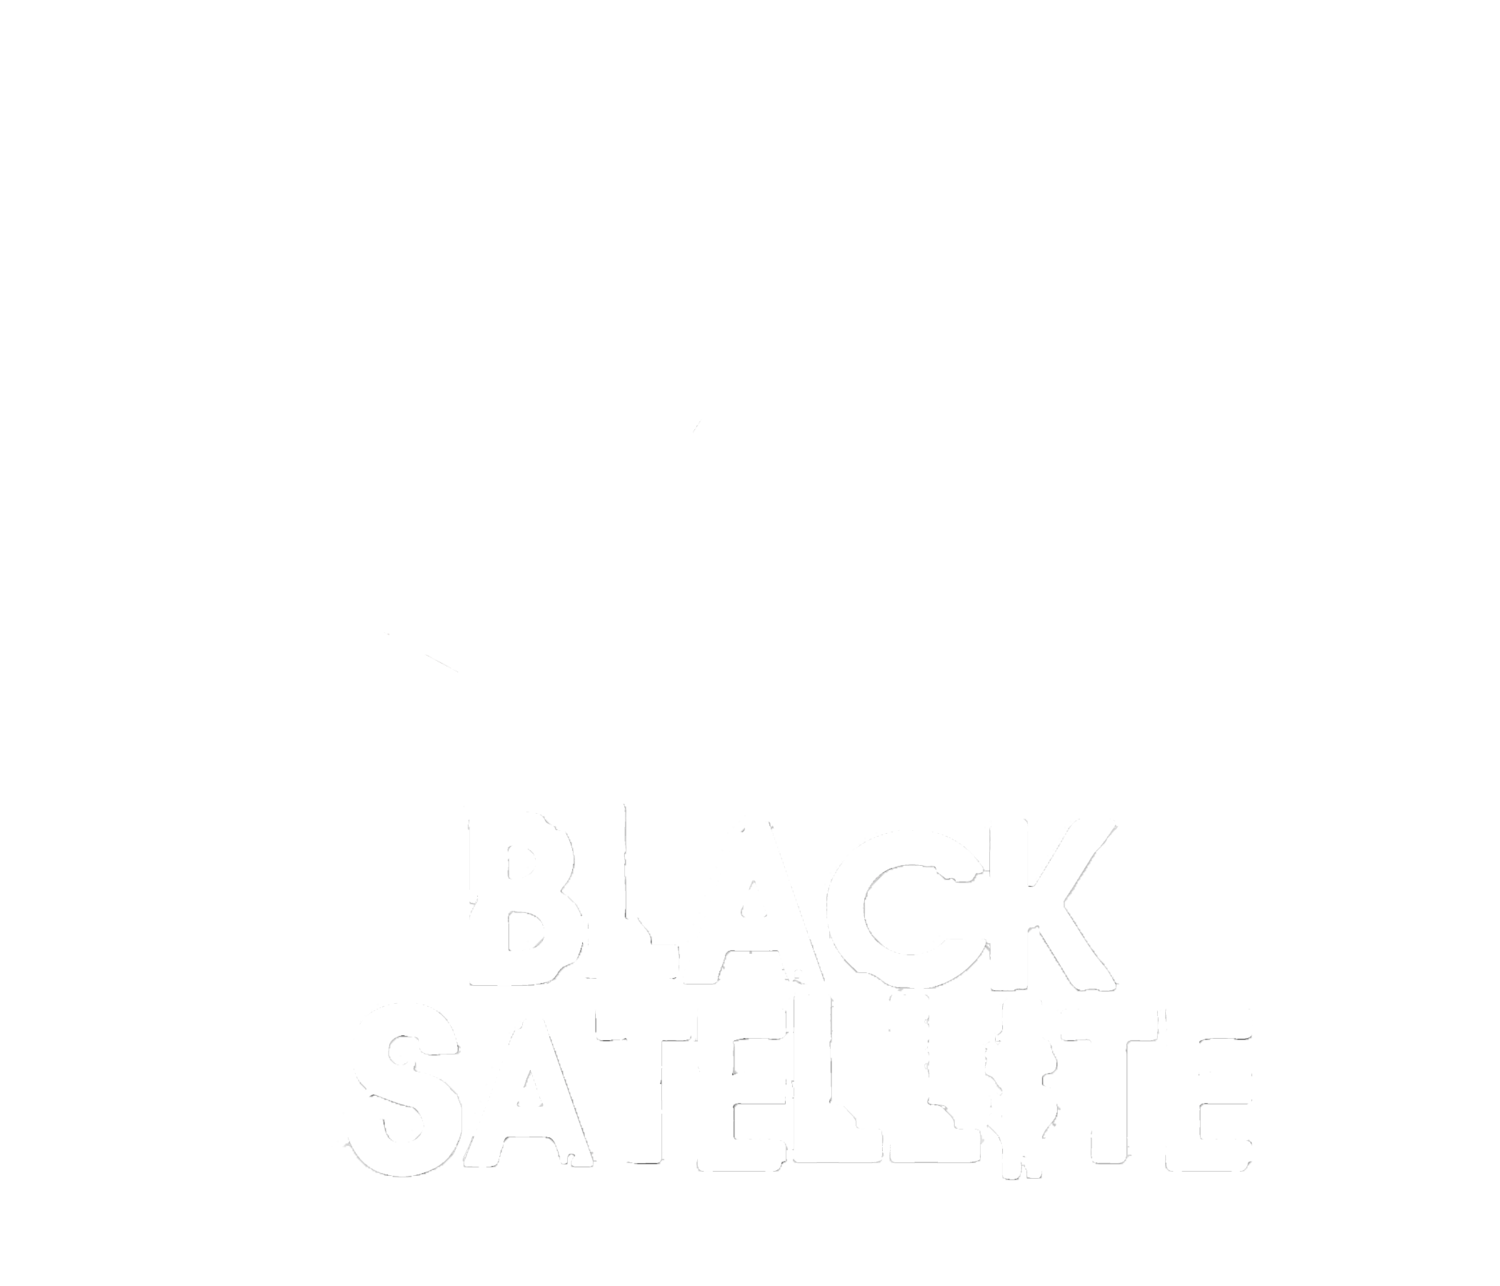 Black Satellite